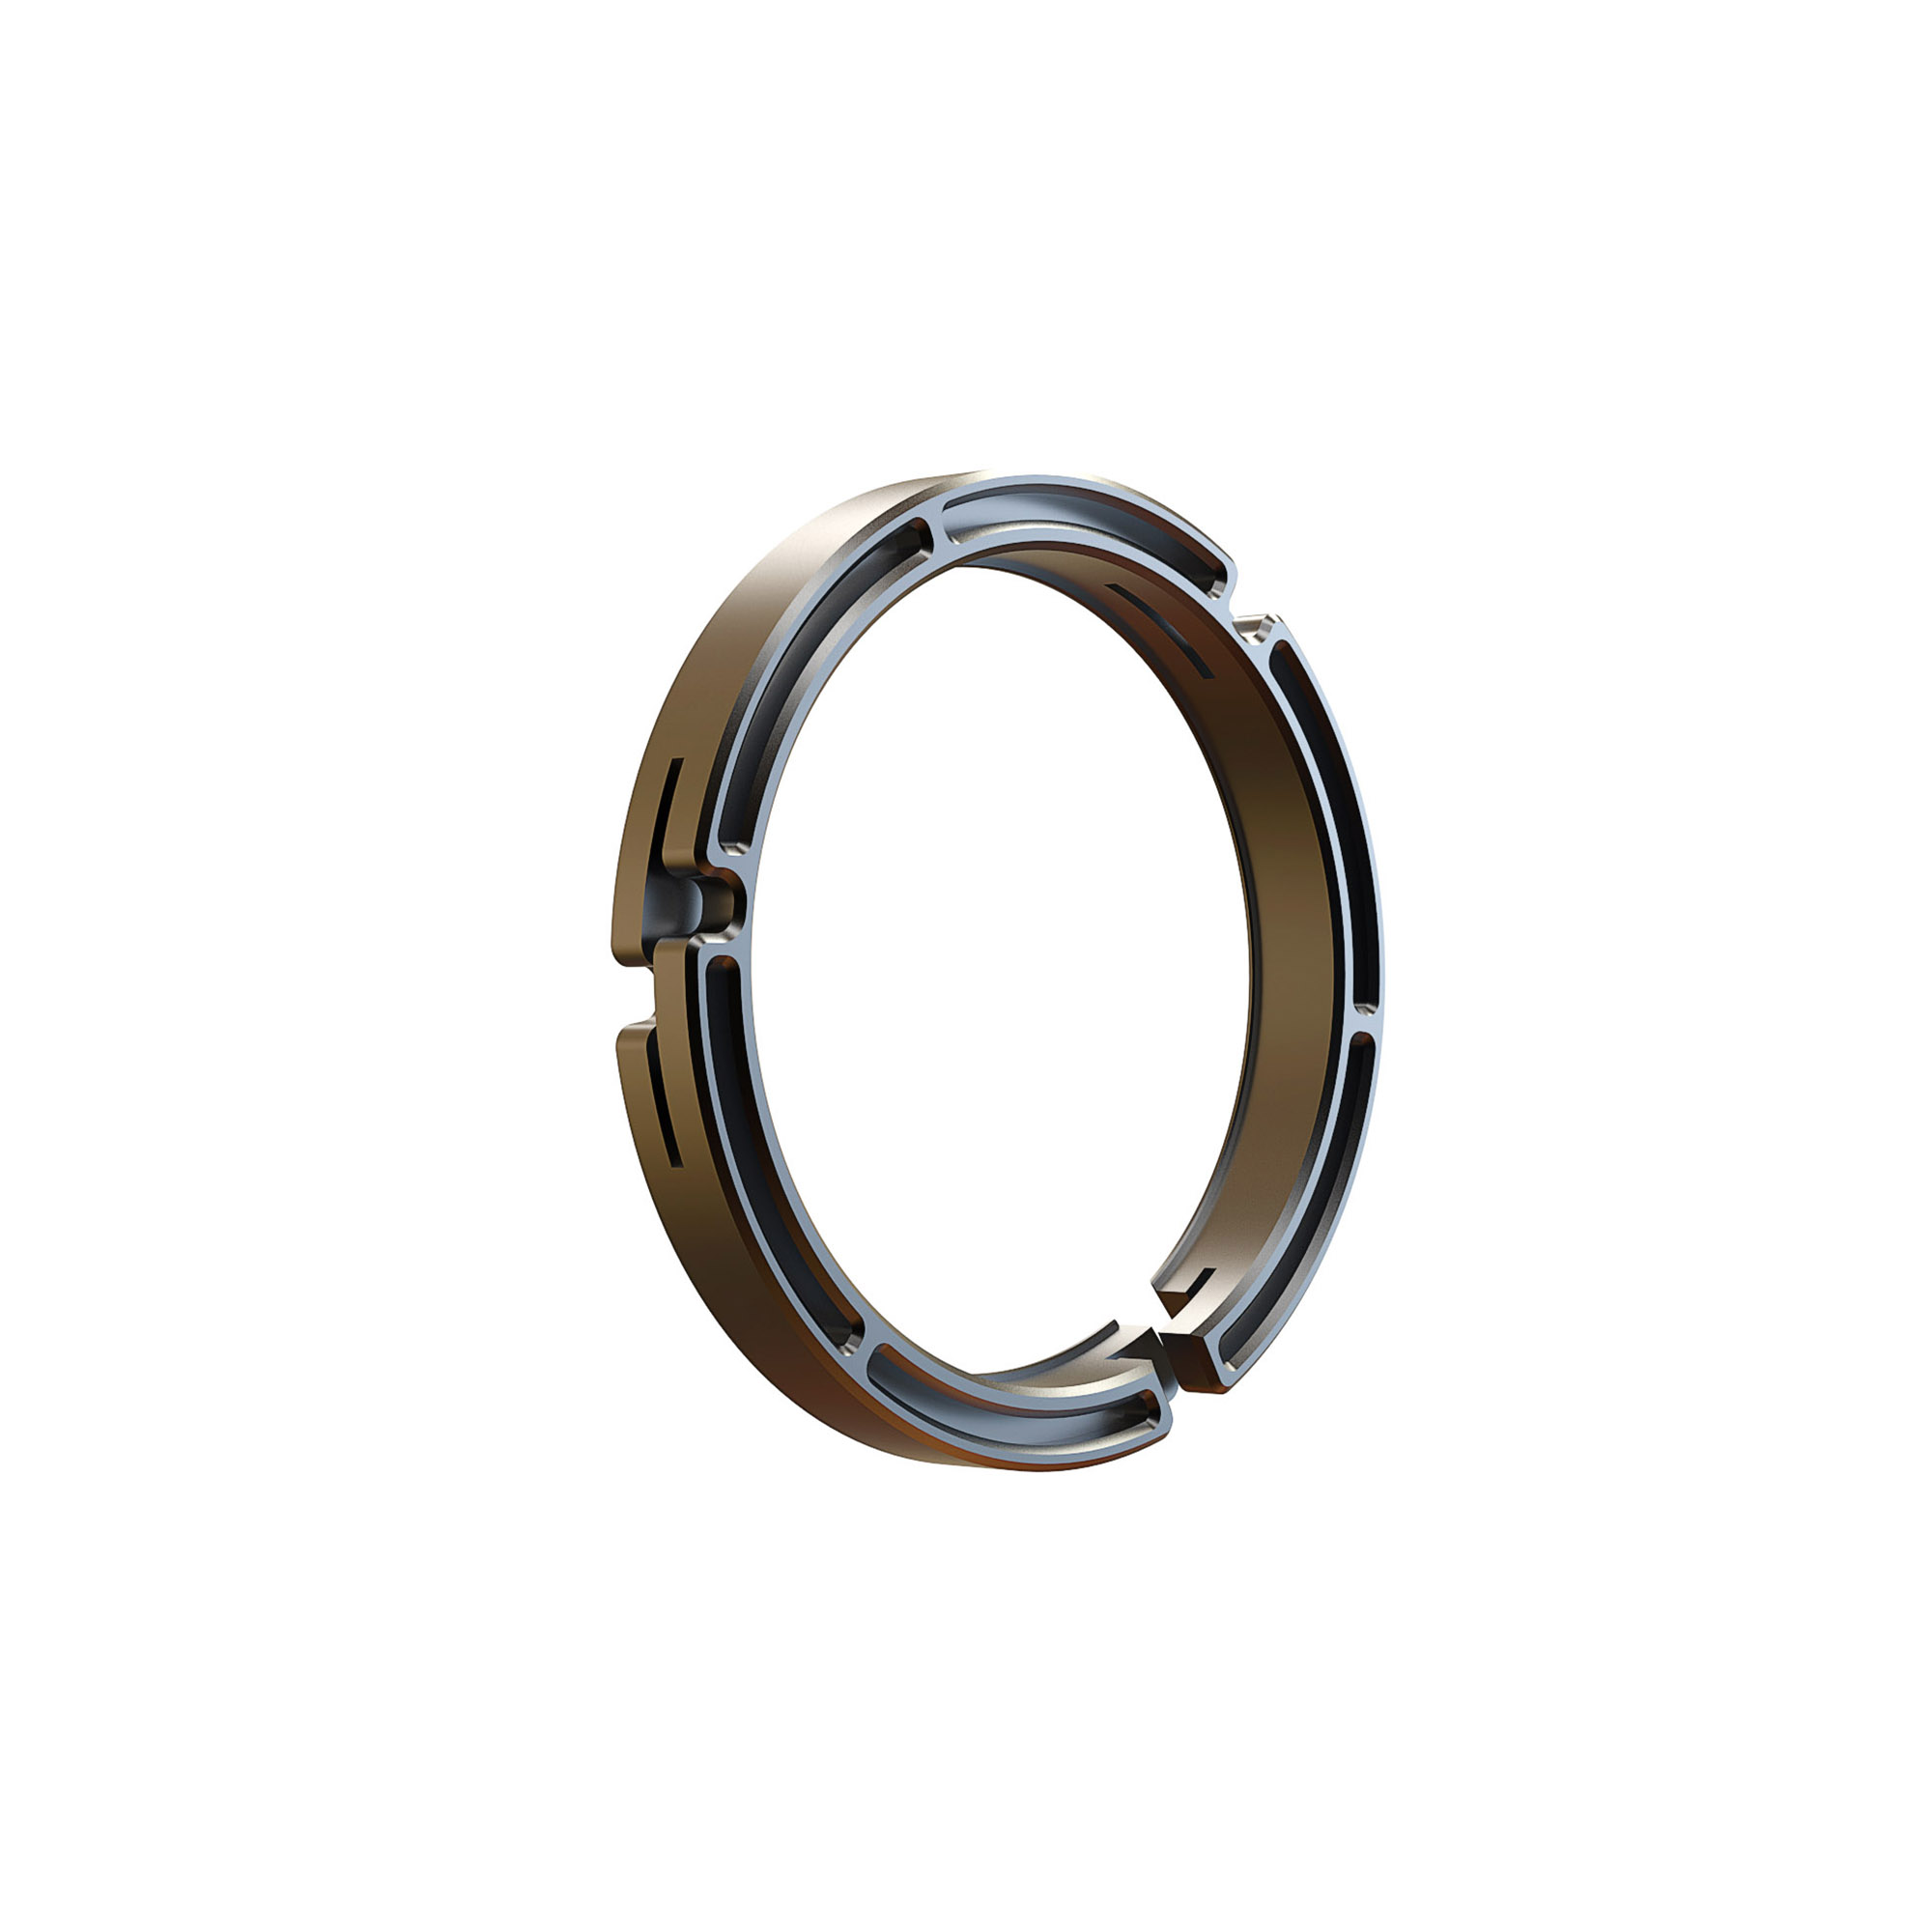 B1250 1016 114 95mm Clamp on Ring 1